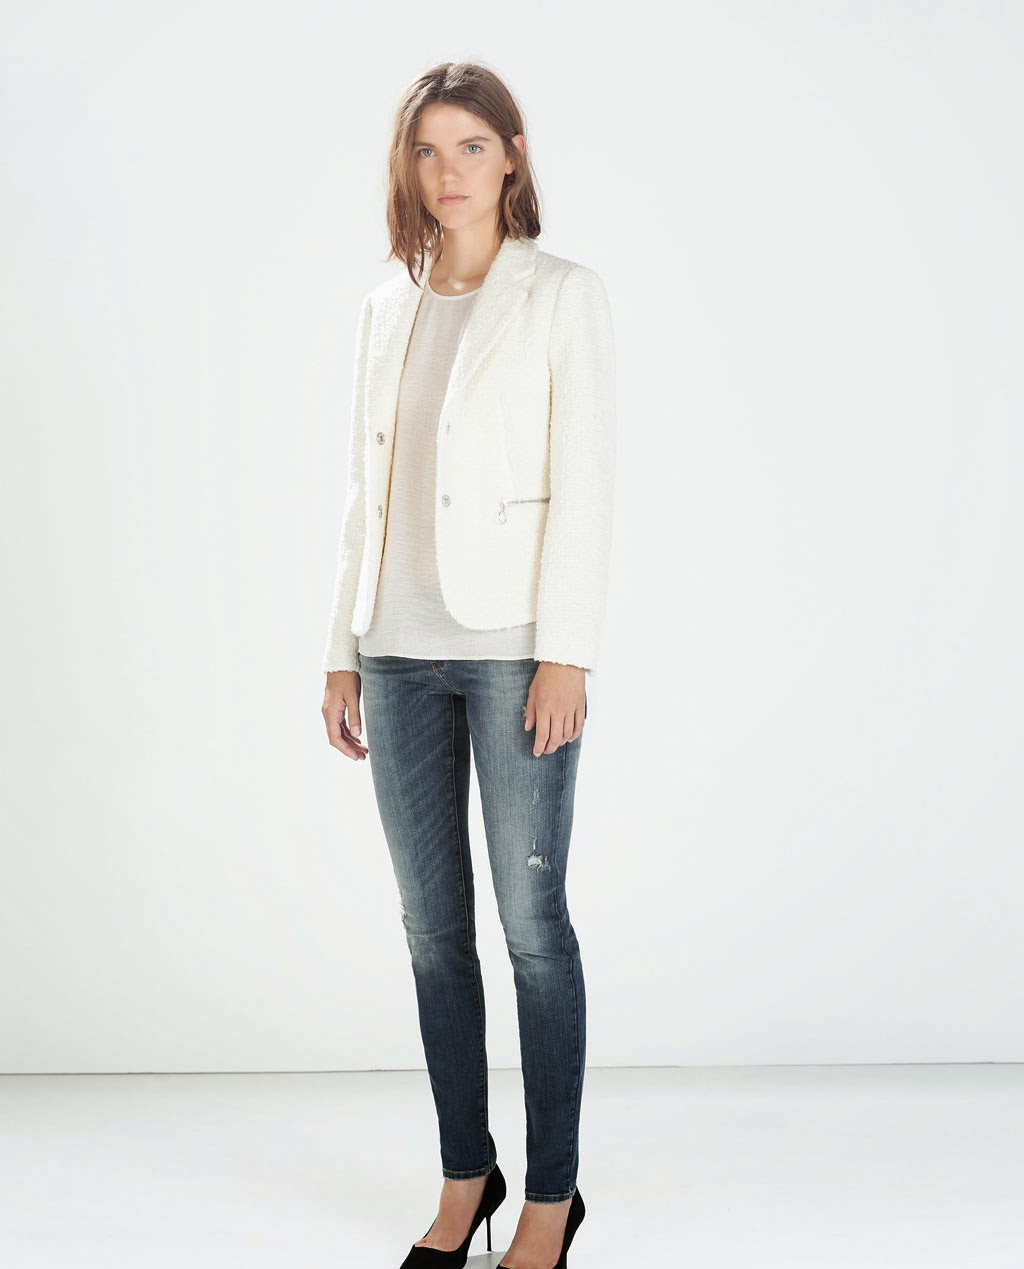 Good winter white jacket for anyone with psoriasis